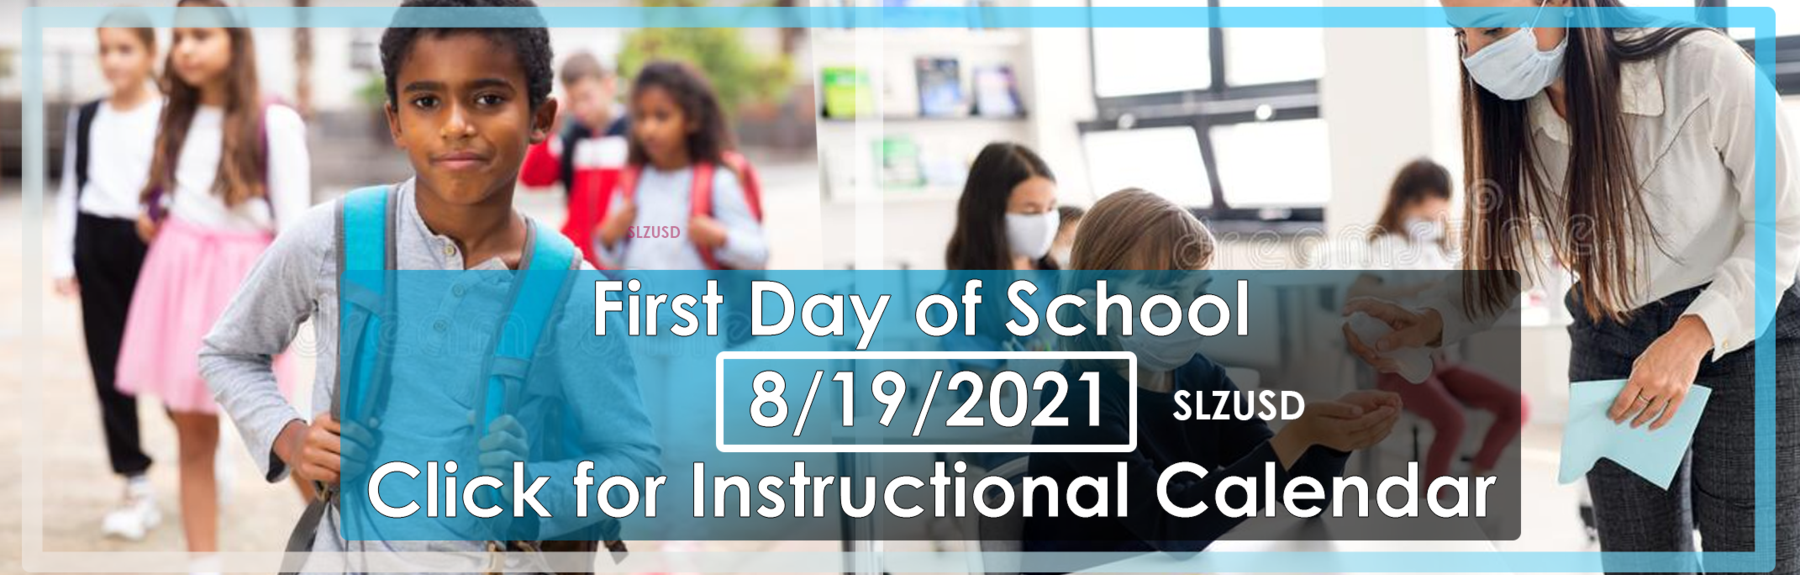 First Day of School 8/19/2021 Click for Instructional Calendar